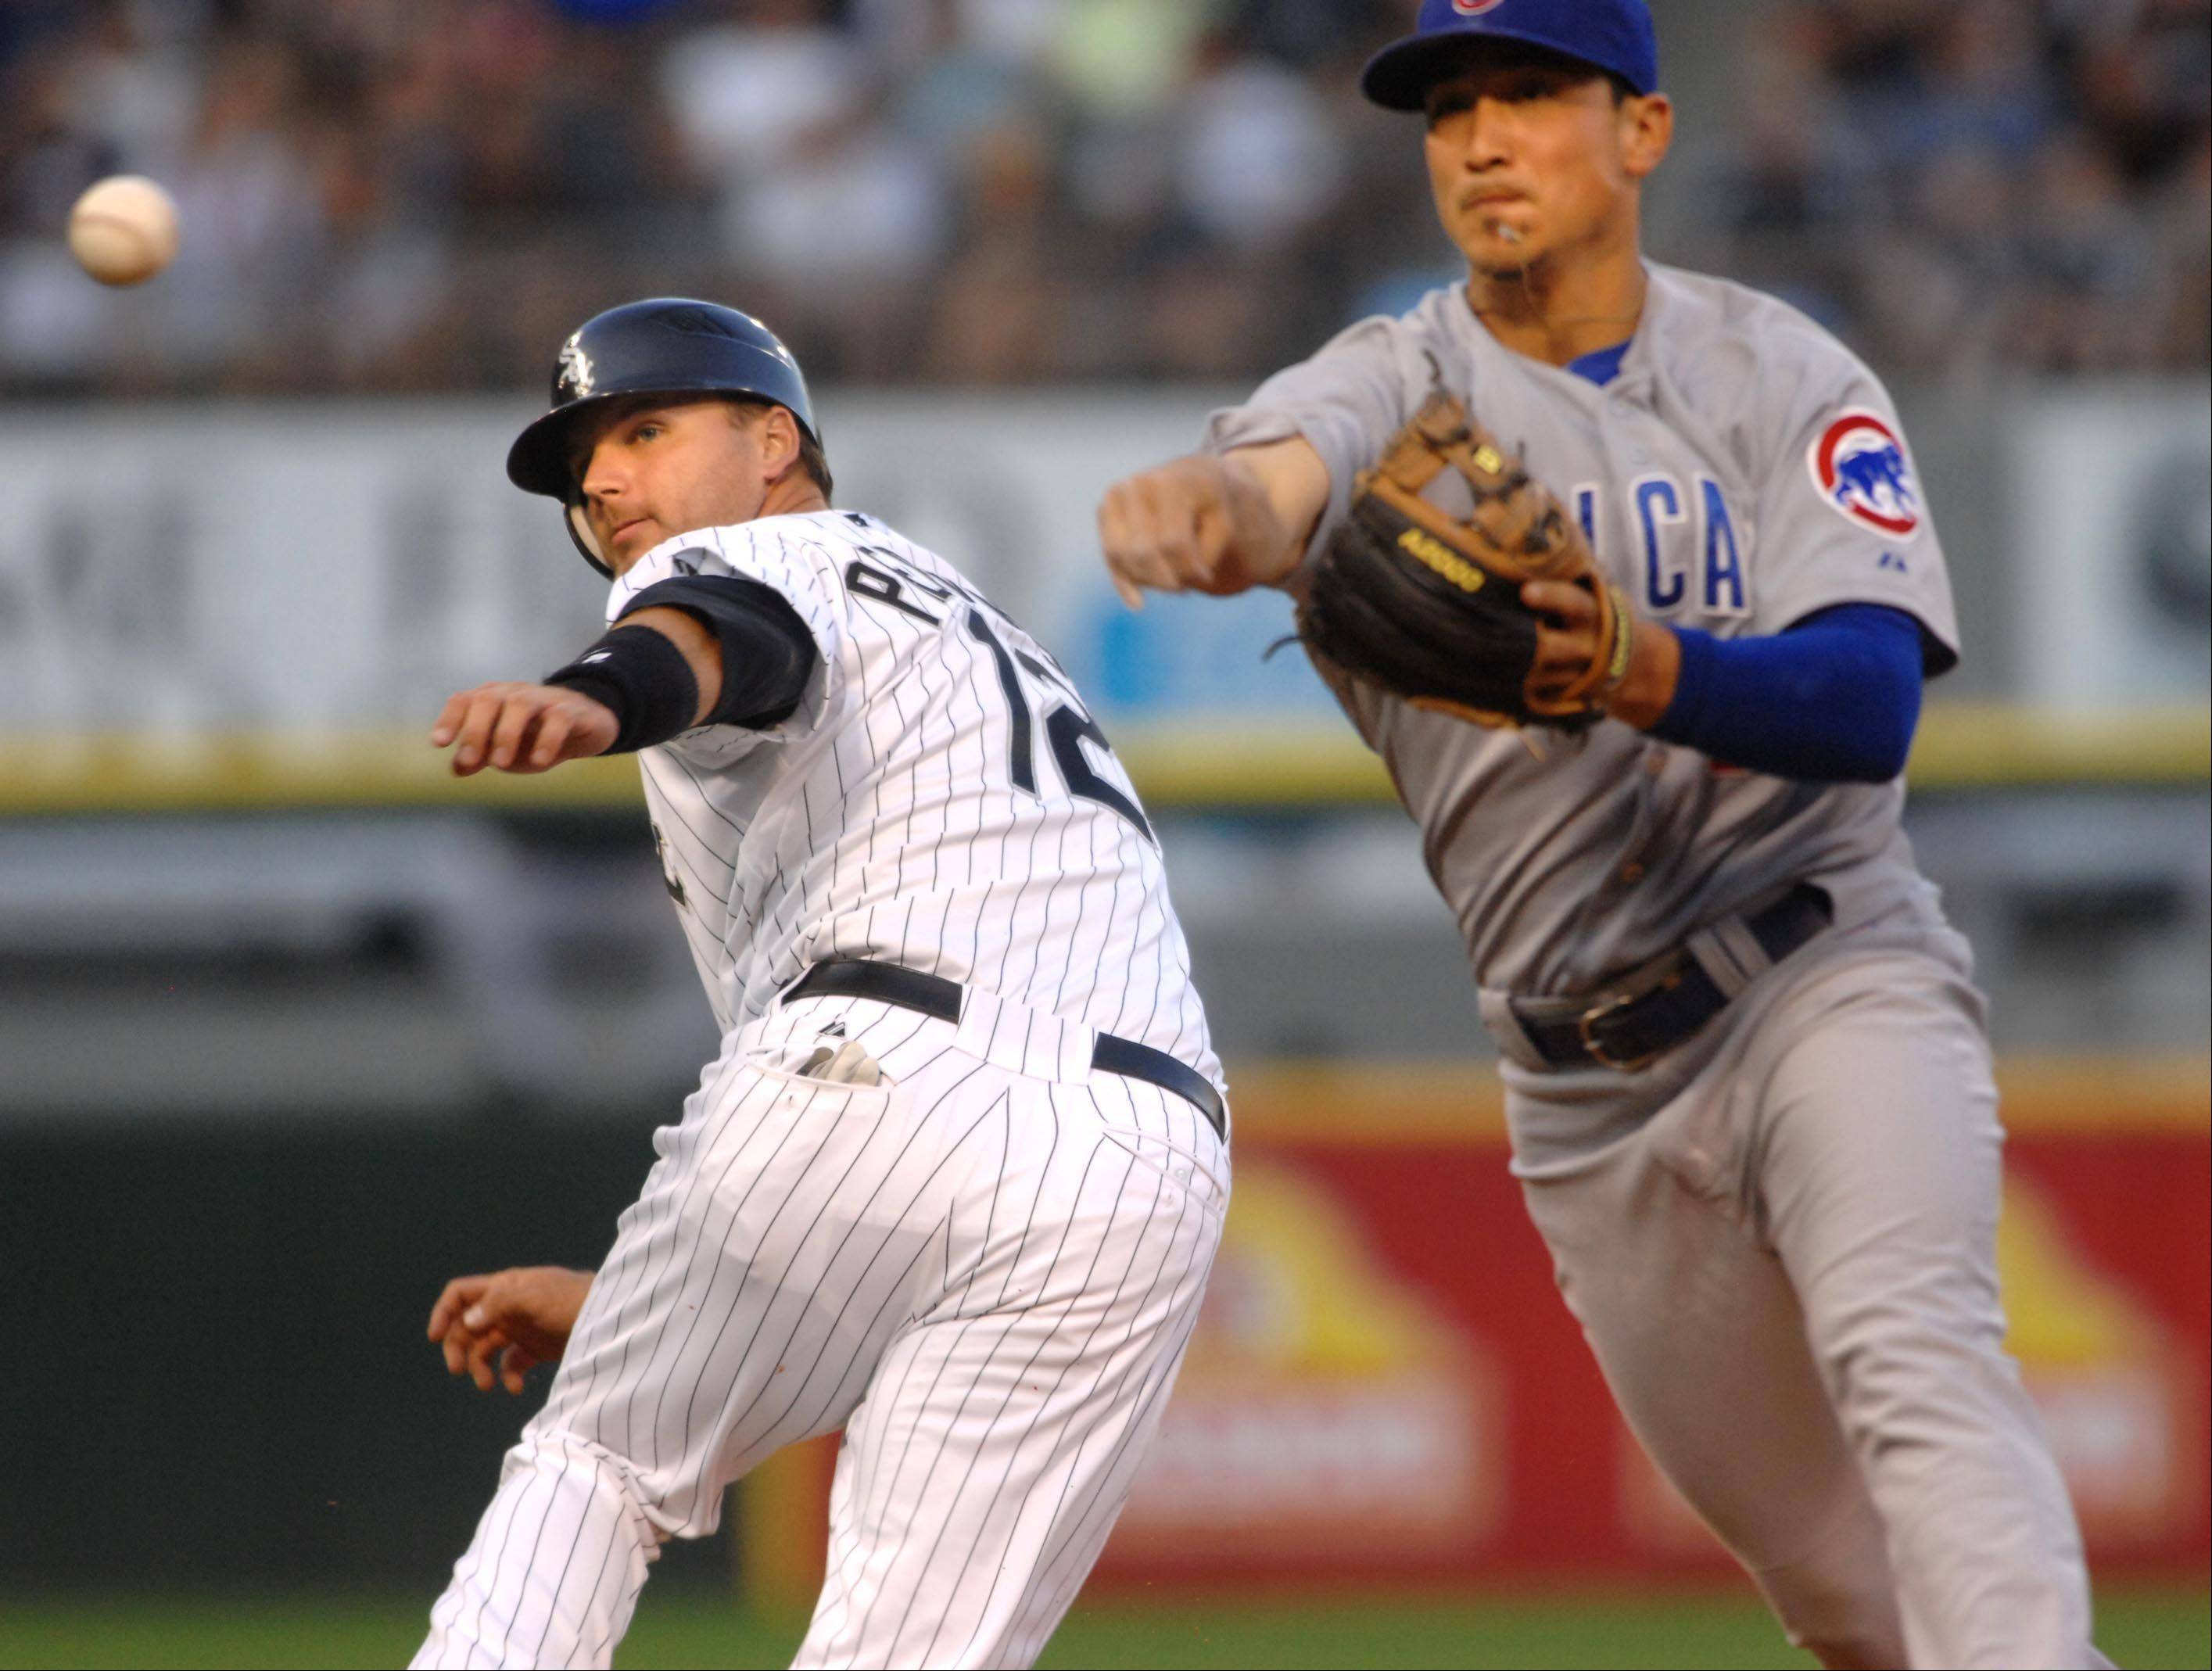 Cubs second baseman Darwin Barney won his first gold glove Tuesday night, beating out the Cincinnati Reds Brandon Phillips and Aaron Hill of Arizona.